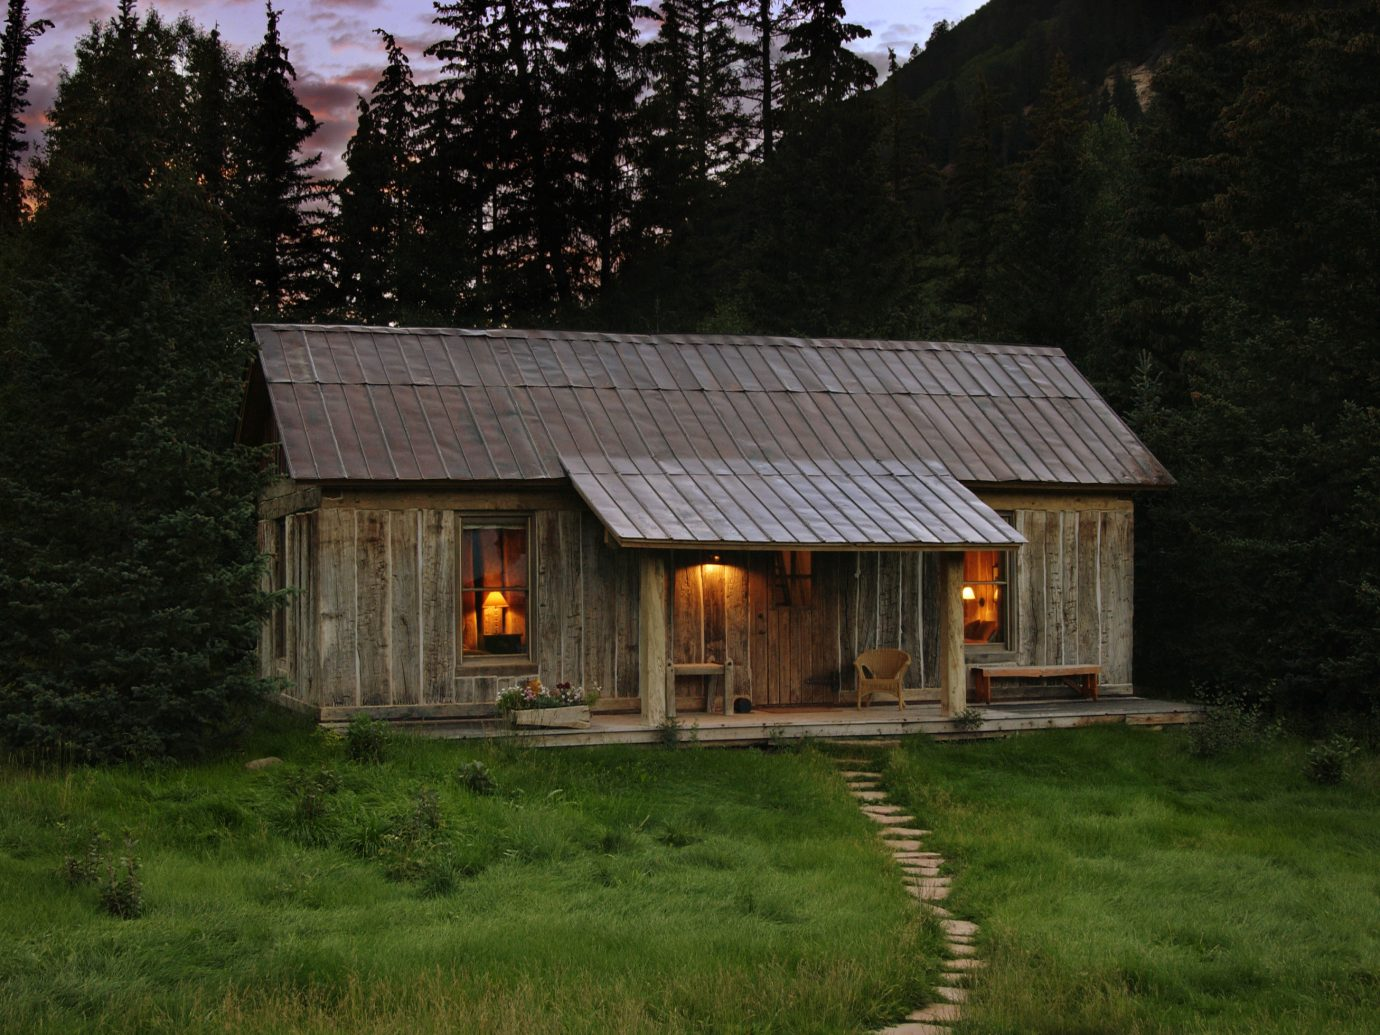 The 8 Best Cabins for a Rustic Fall Weekend Getaway | Jetsetter